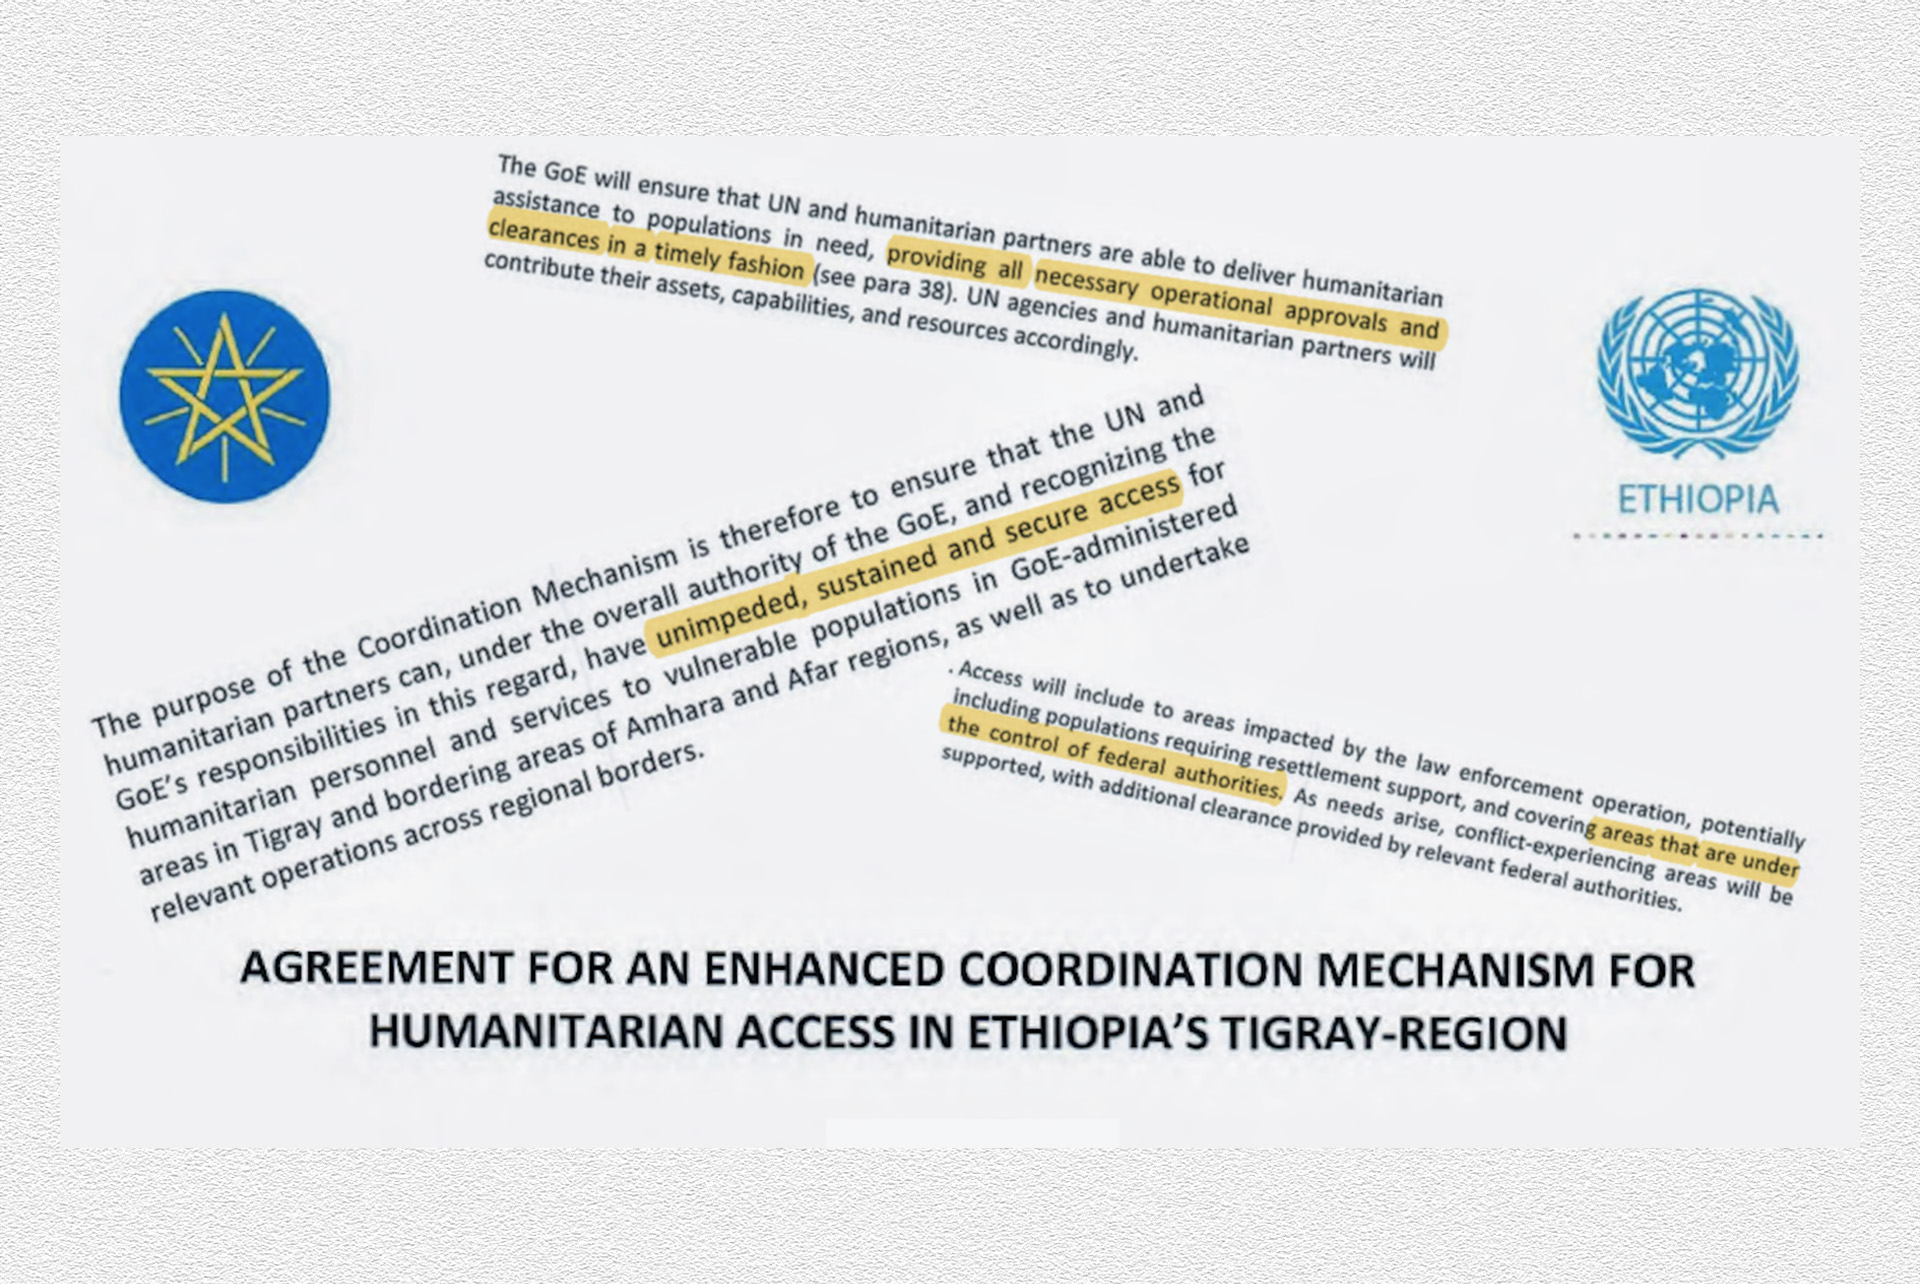 Extracts from a humanitarian access agreement between Ethiopia and the United Nations signed on 29 November 2020.